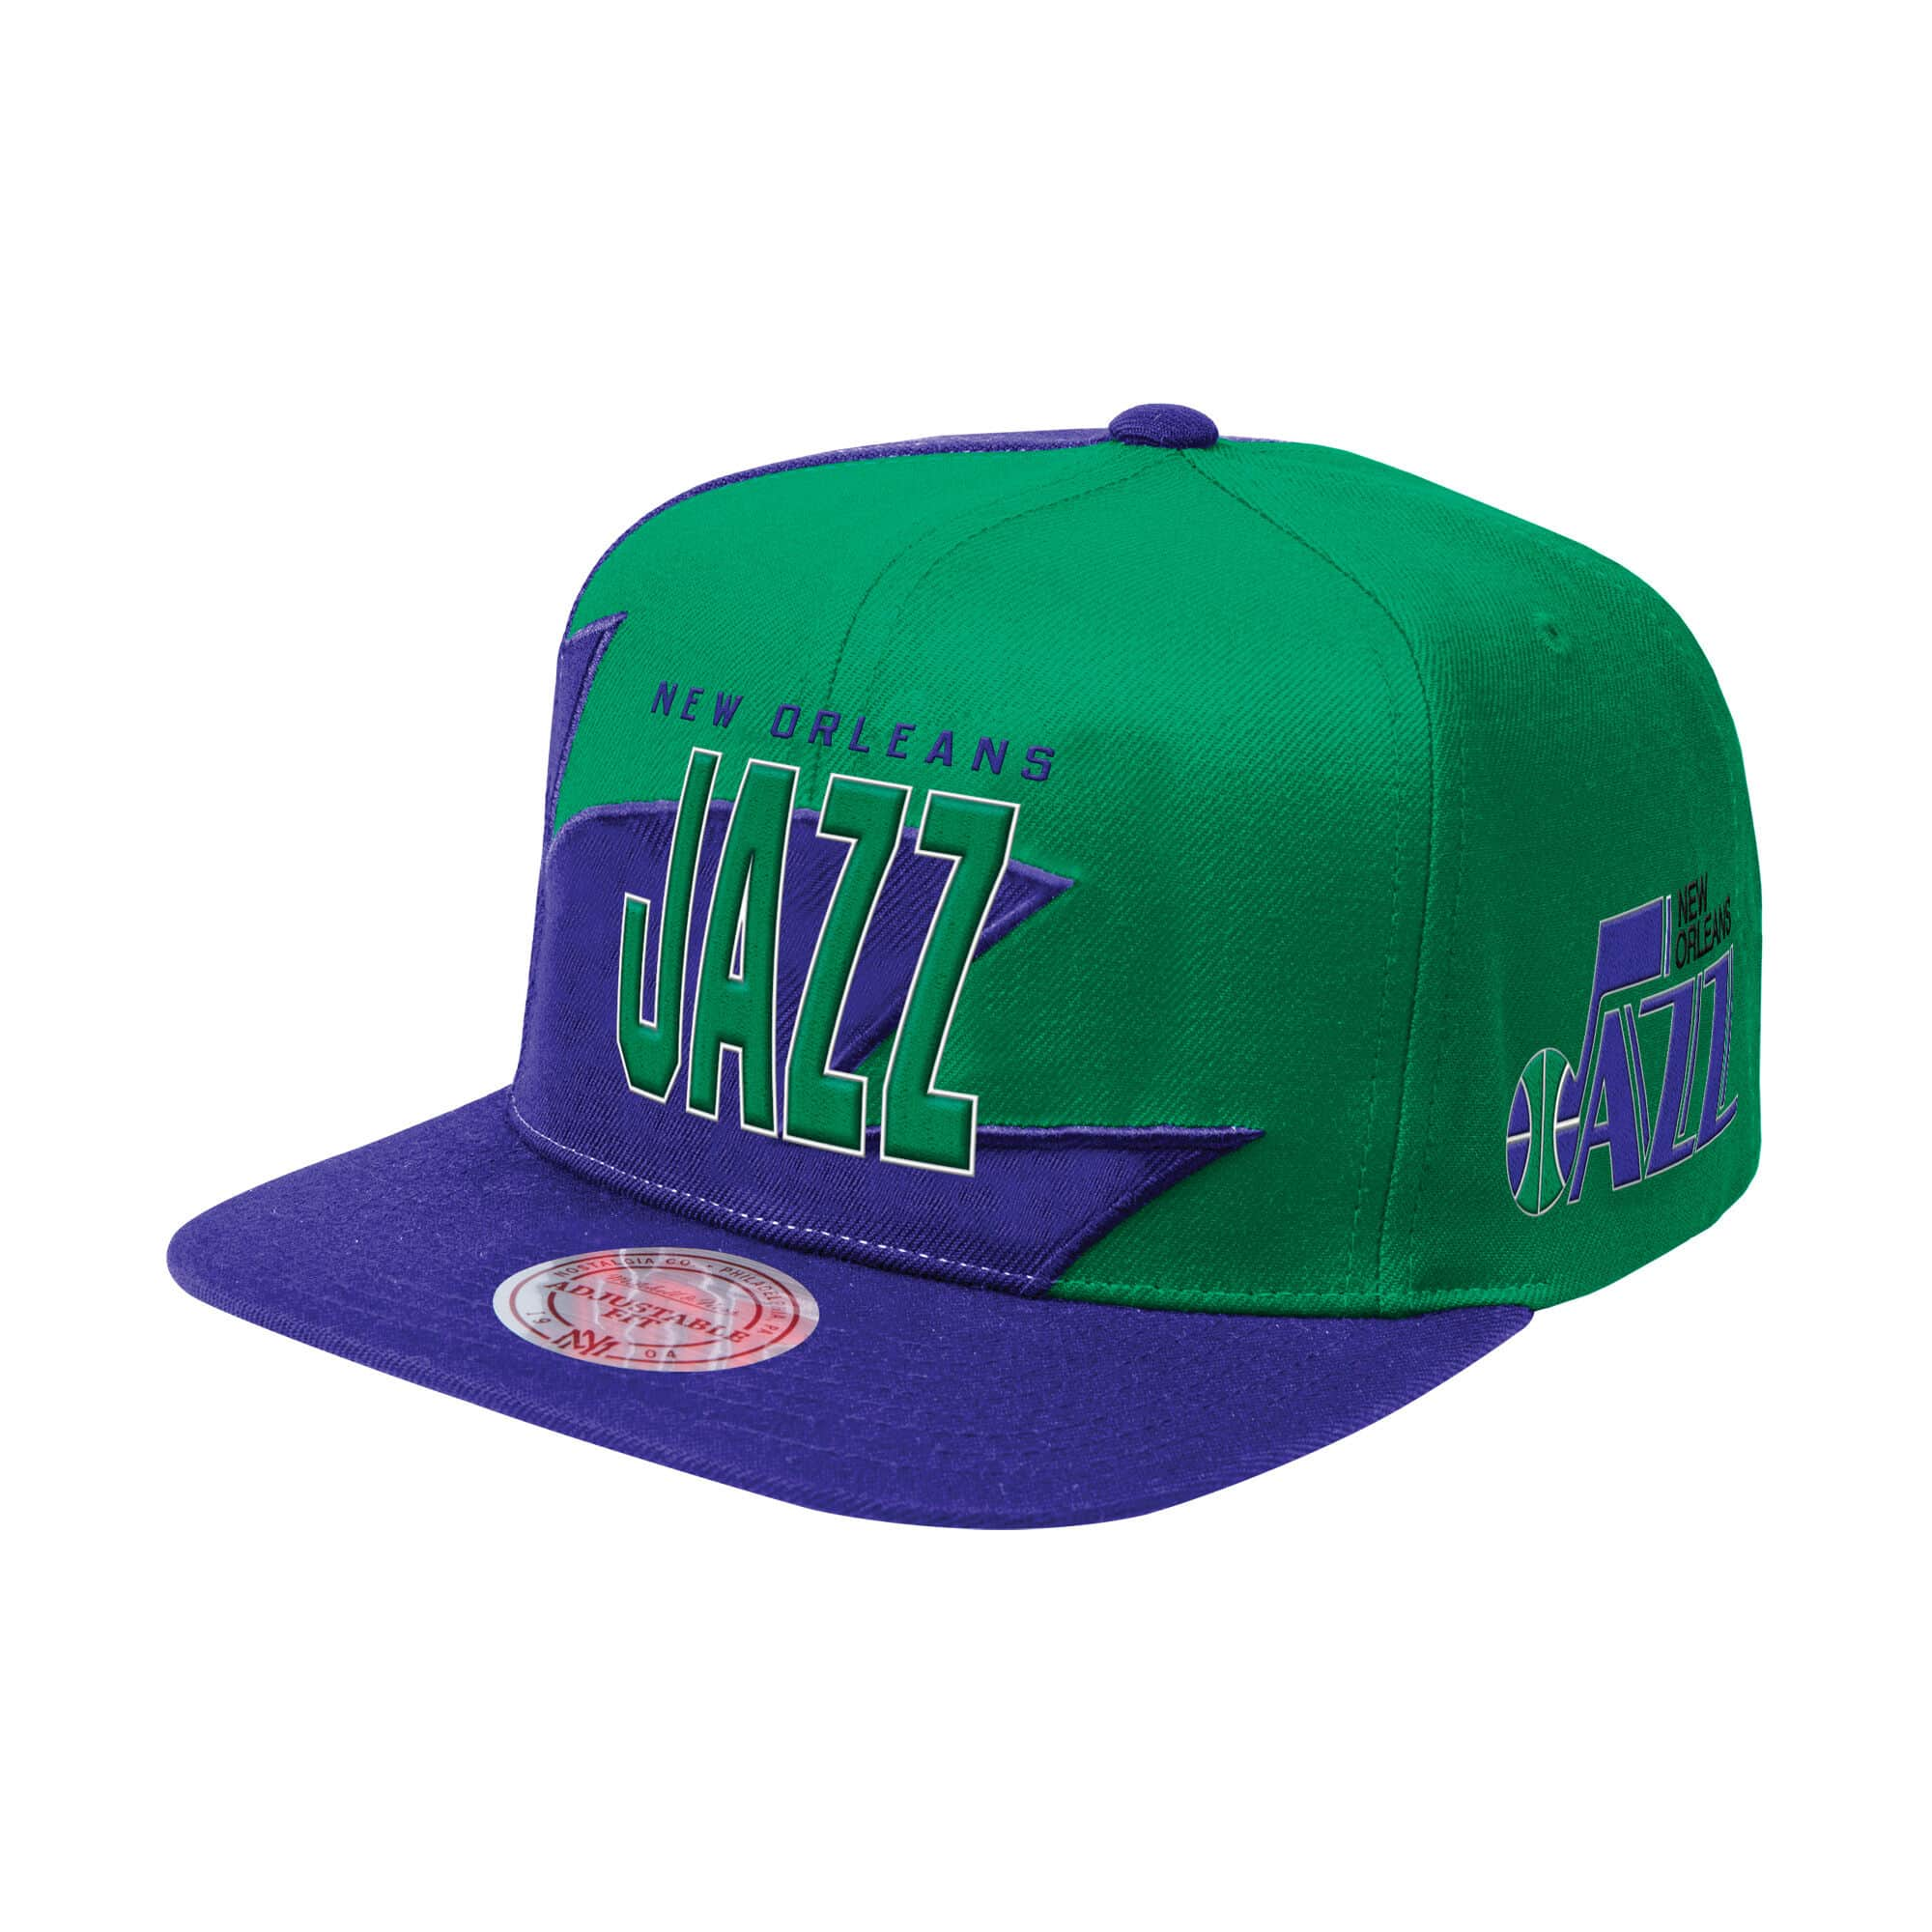 Shark Tooth Snapback New Orleans Jazz